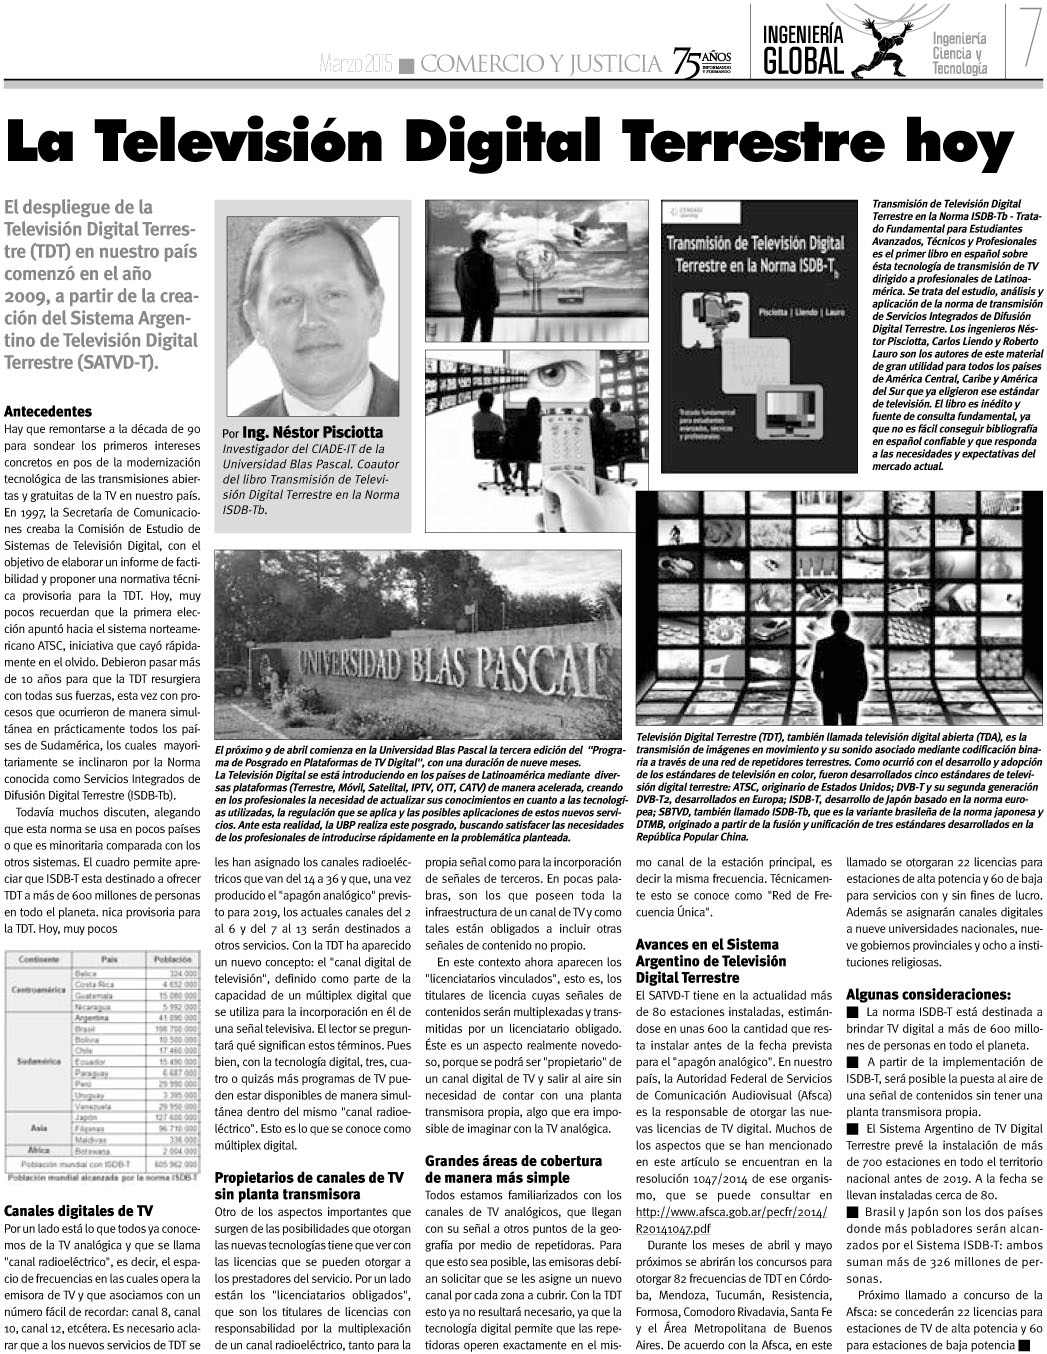 Suplemento Ingeniería Global